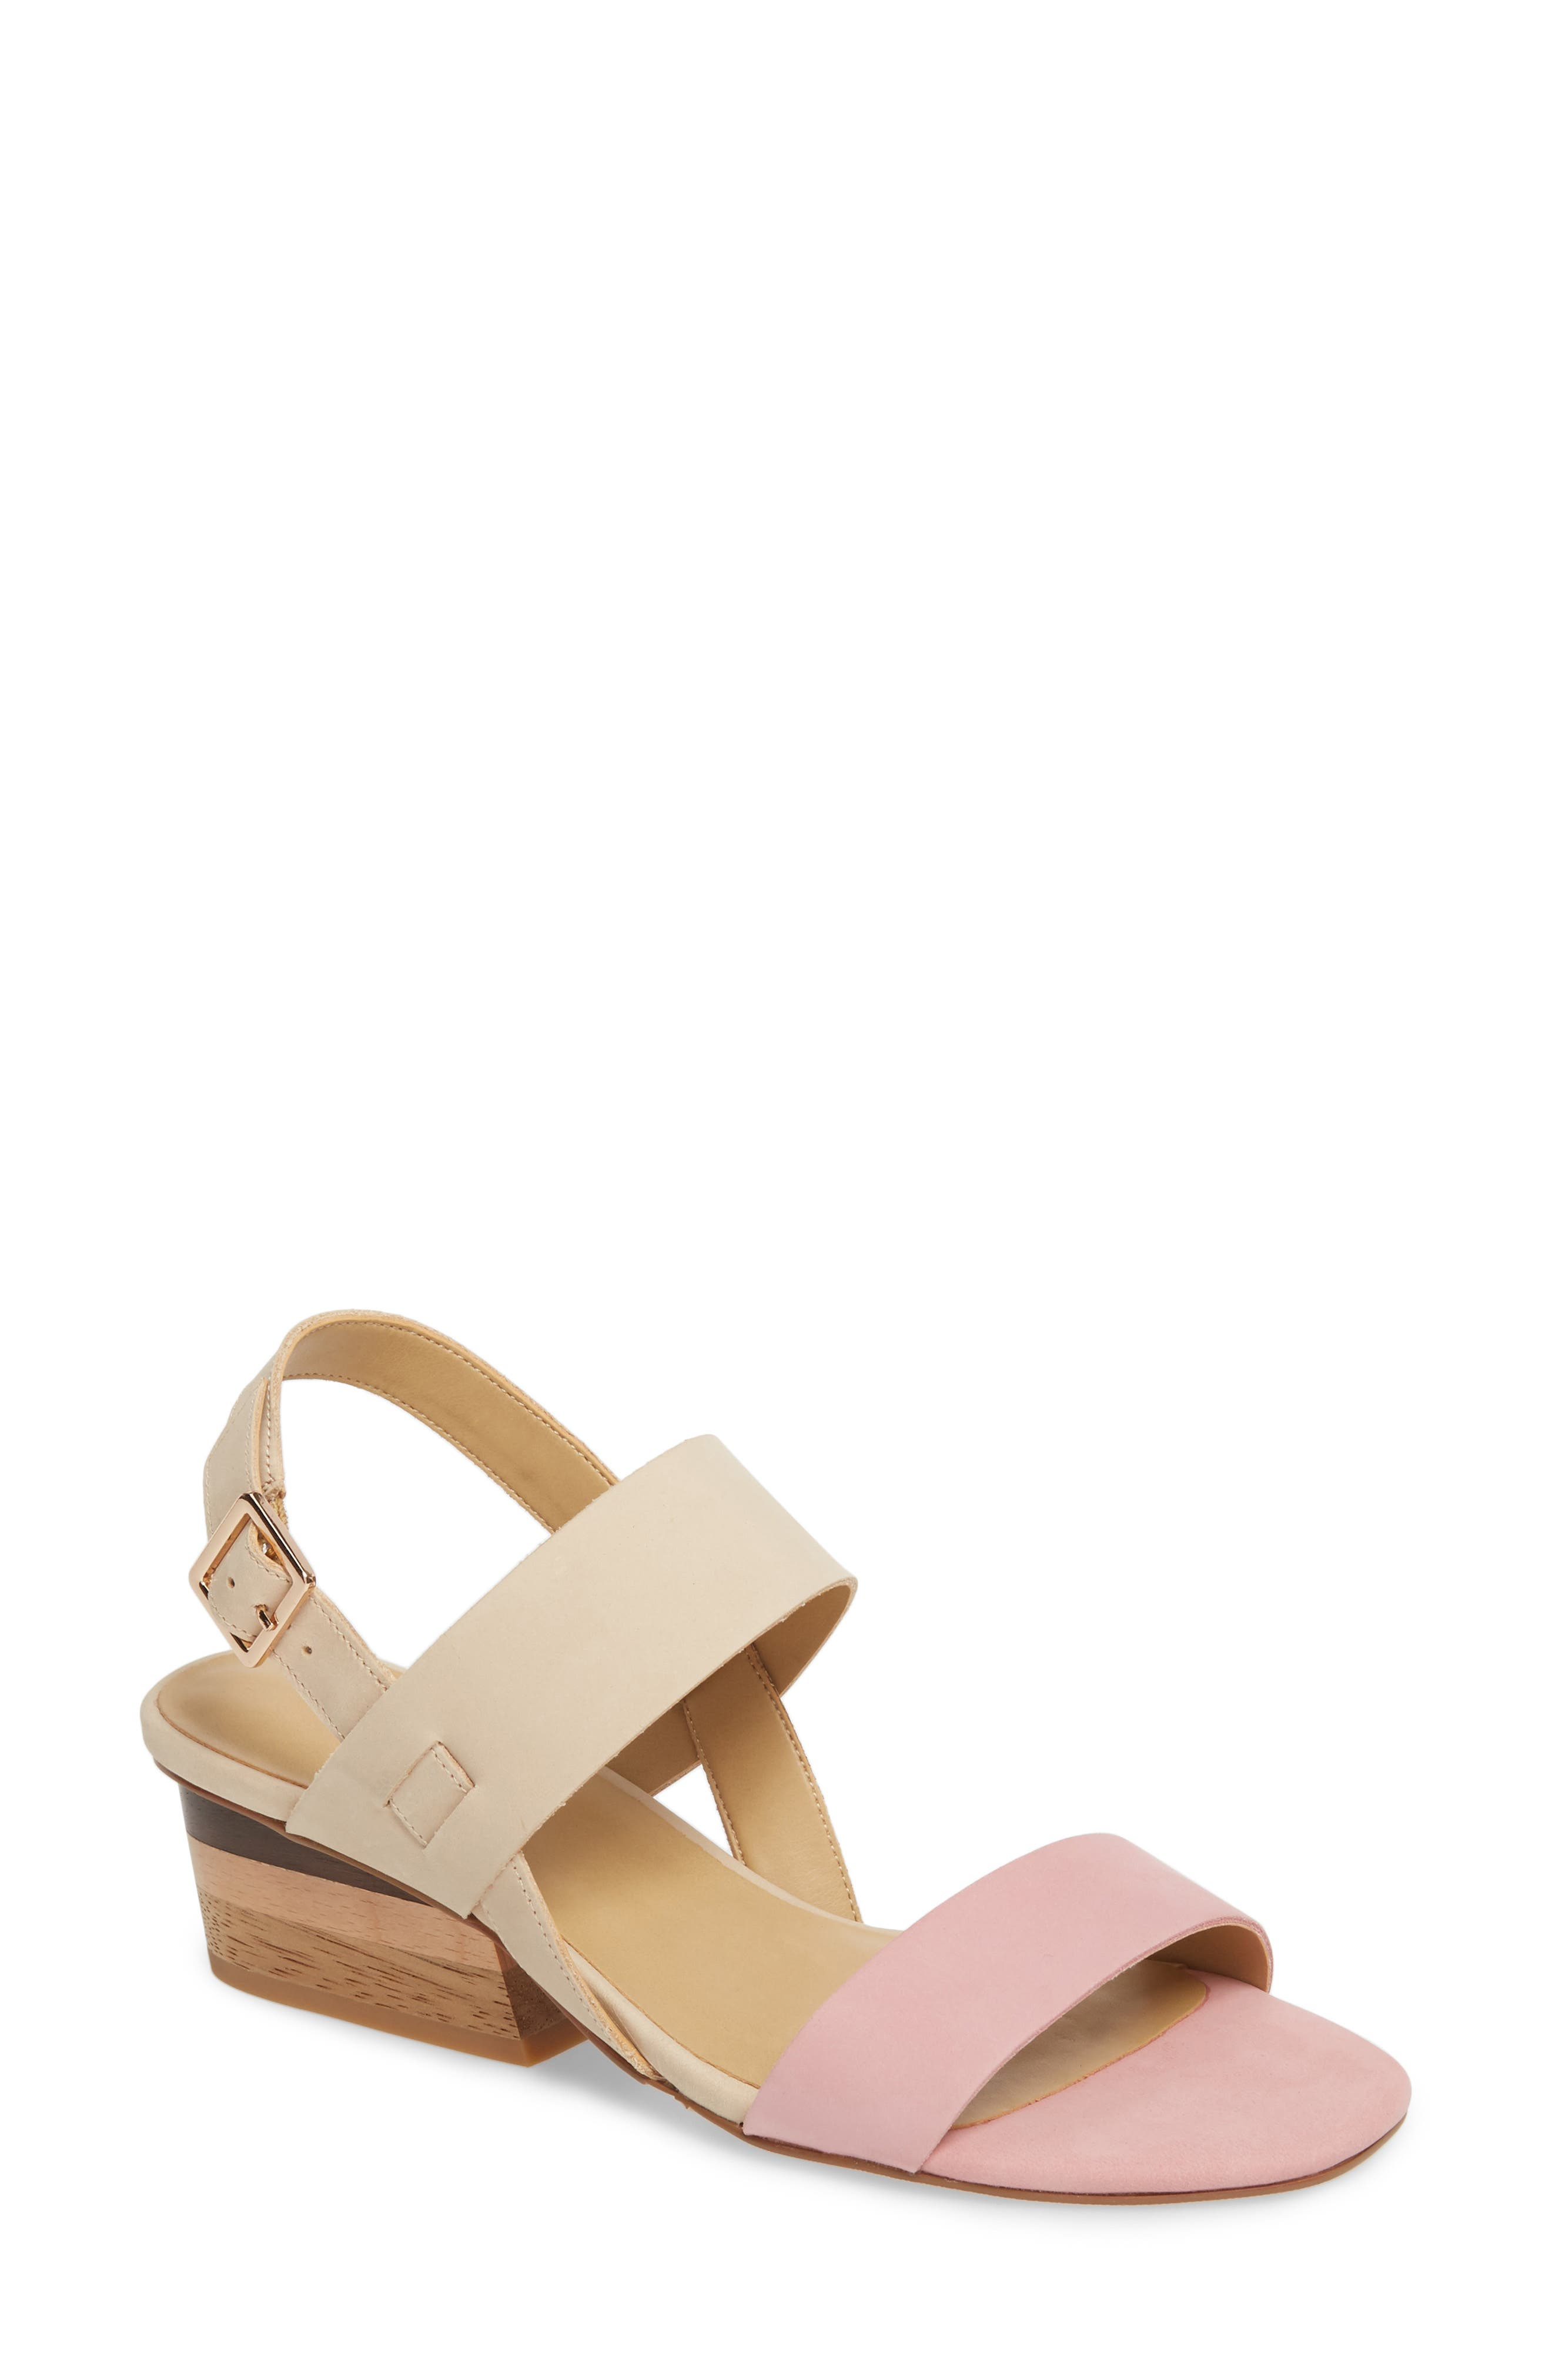 Caryna Slingback Sandal,                             Main thumbnail 1, color,                             Beige/ Pink